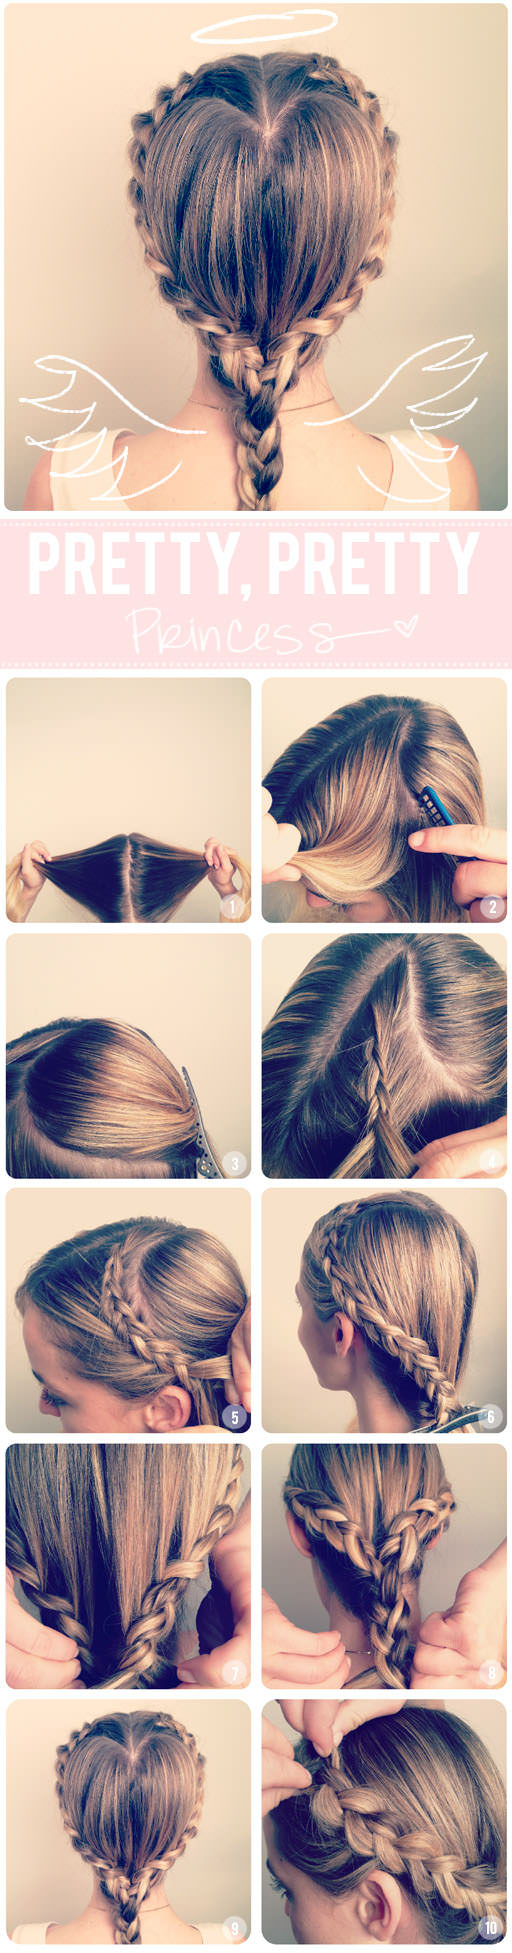 6 Love Inspired Valentine's Day Hairstyle Tutorials